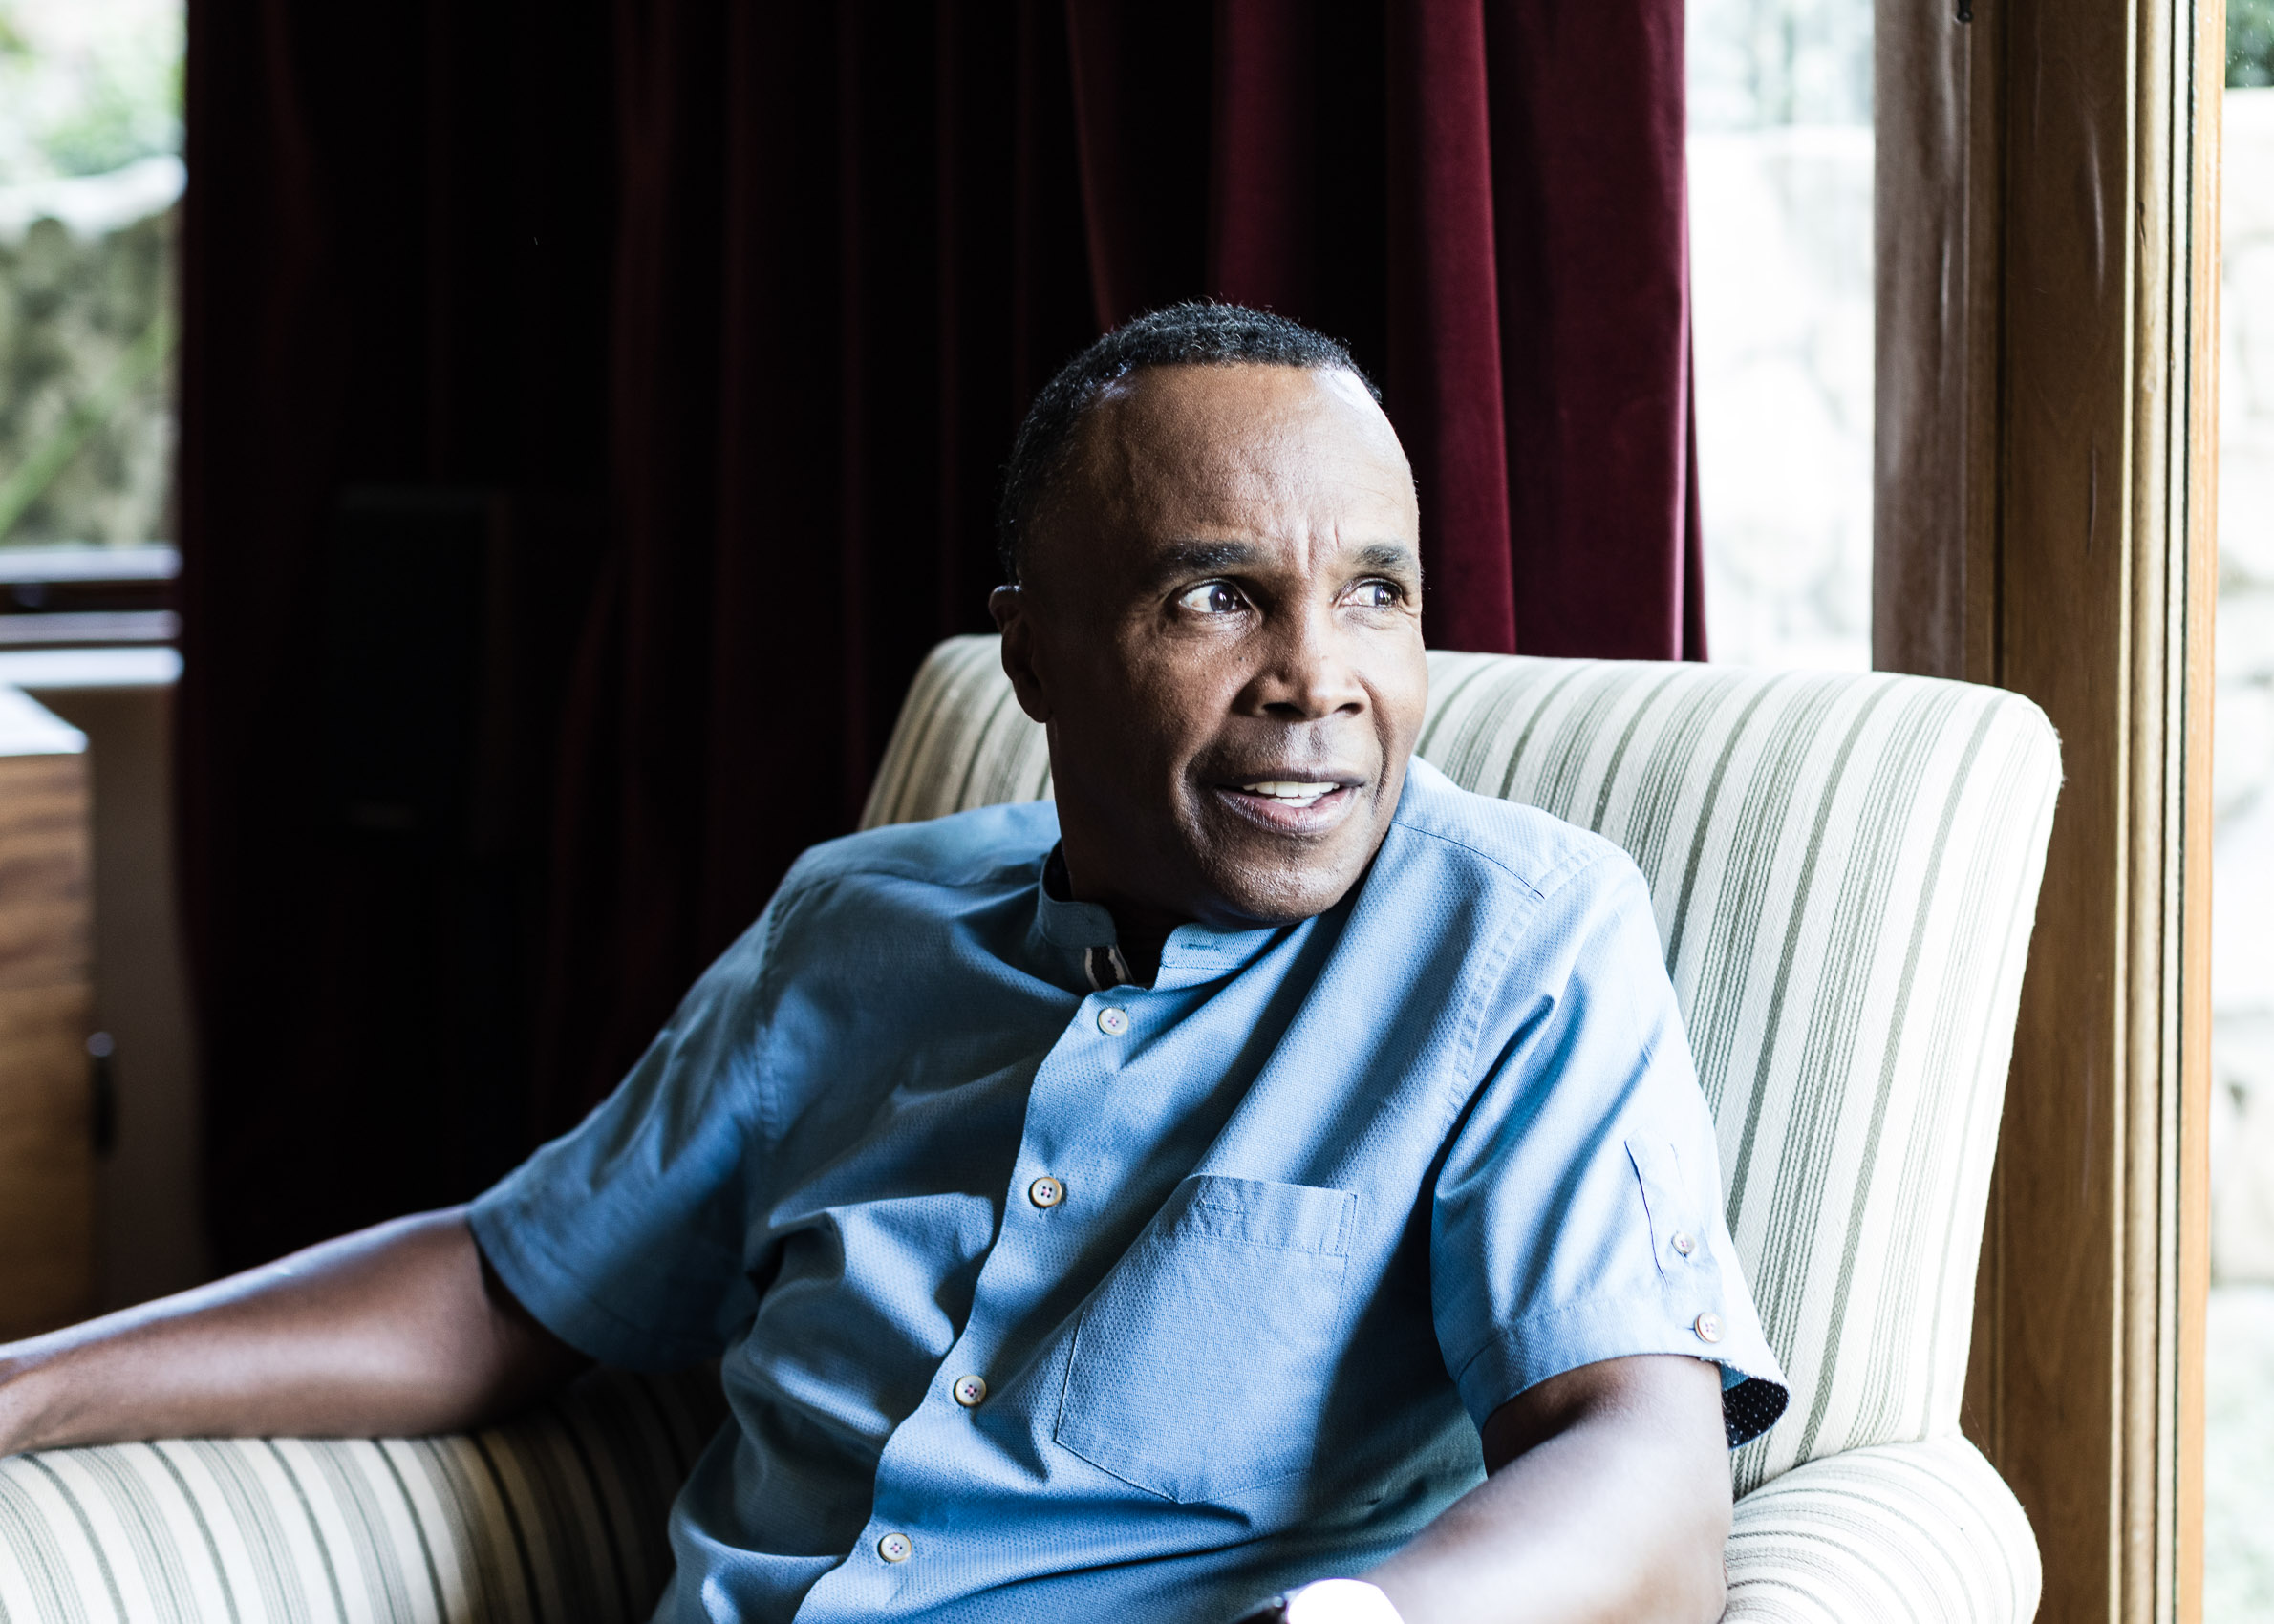 PATRICK STRATTNER PHOTOGRAPHY | Sugar Ray Leonard / Wall Street Journal